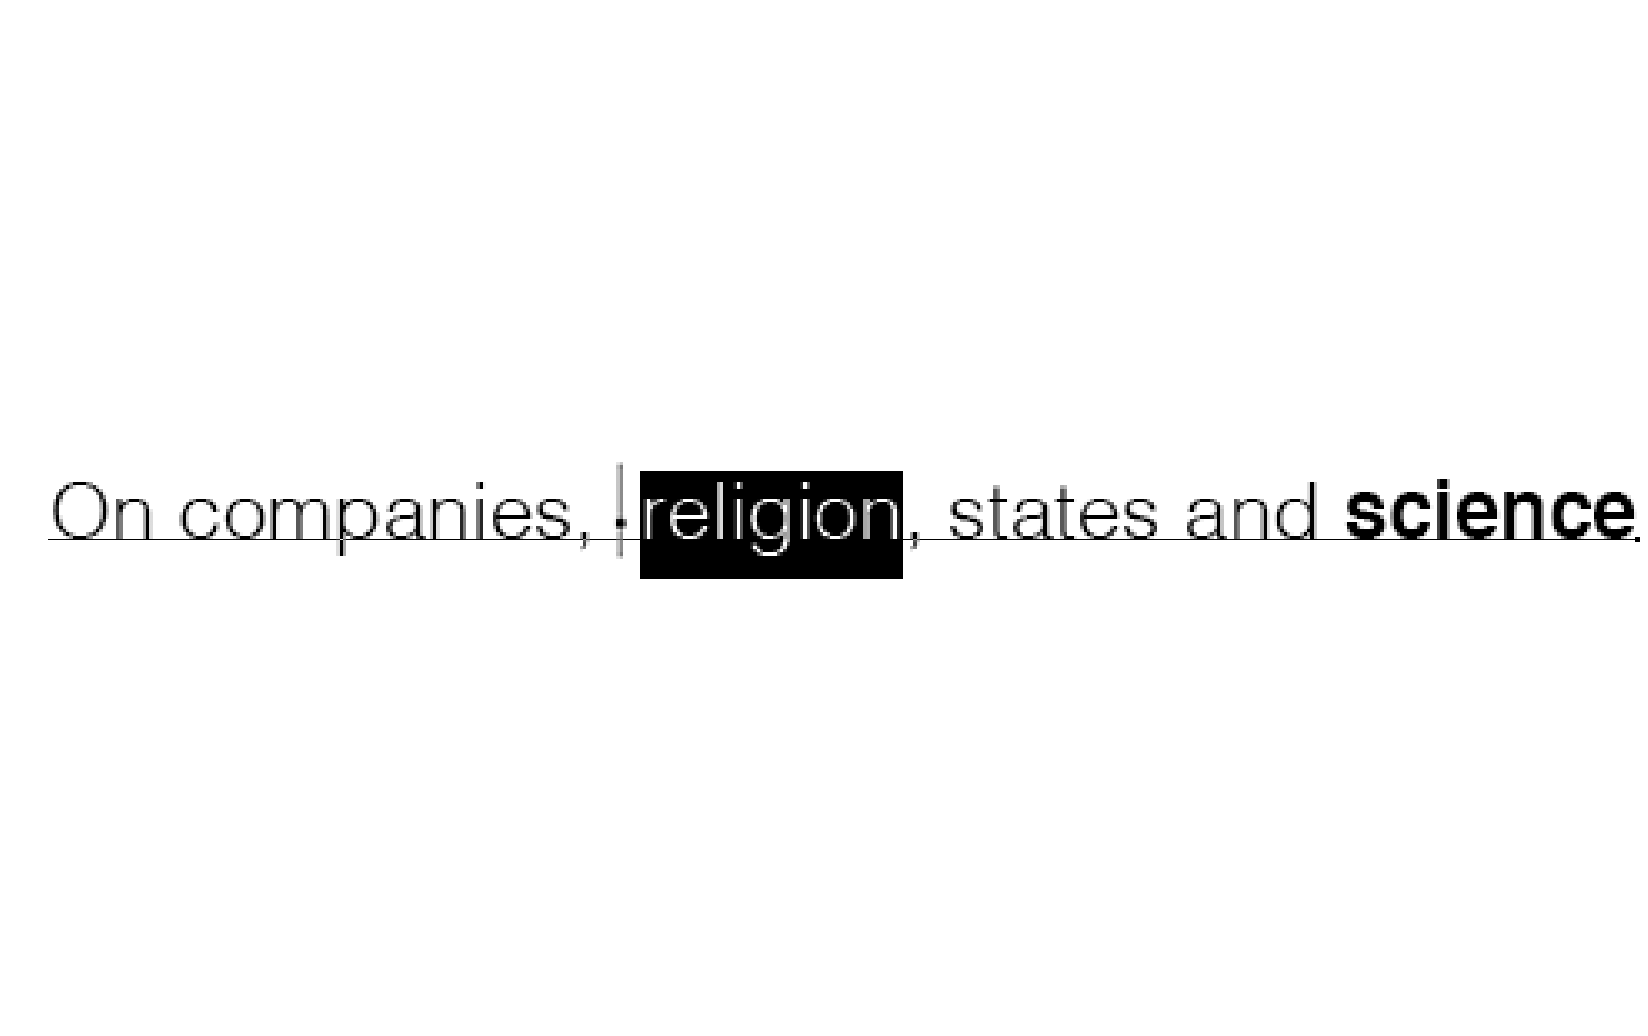 On companies, religion, states and science